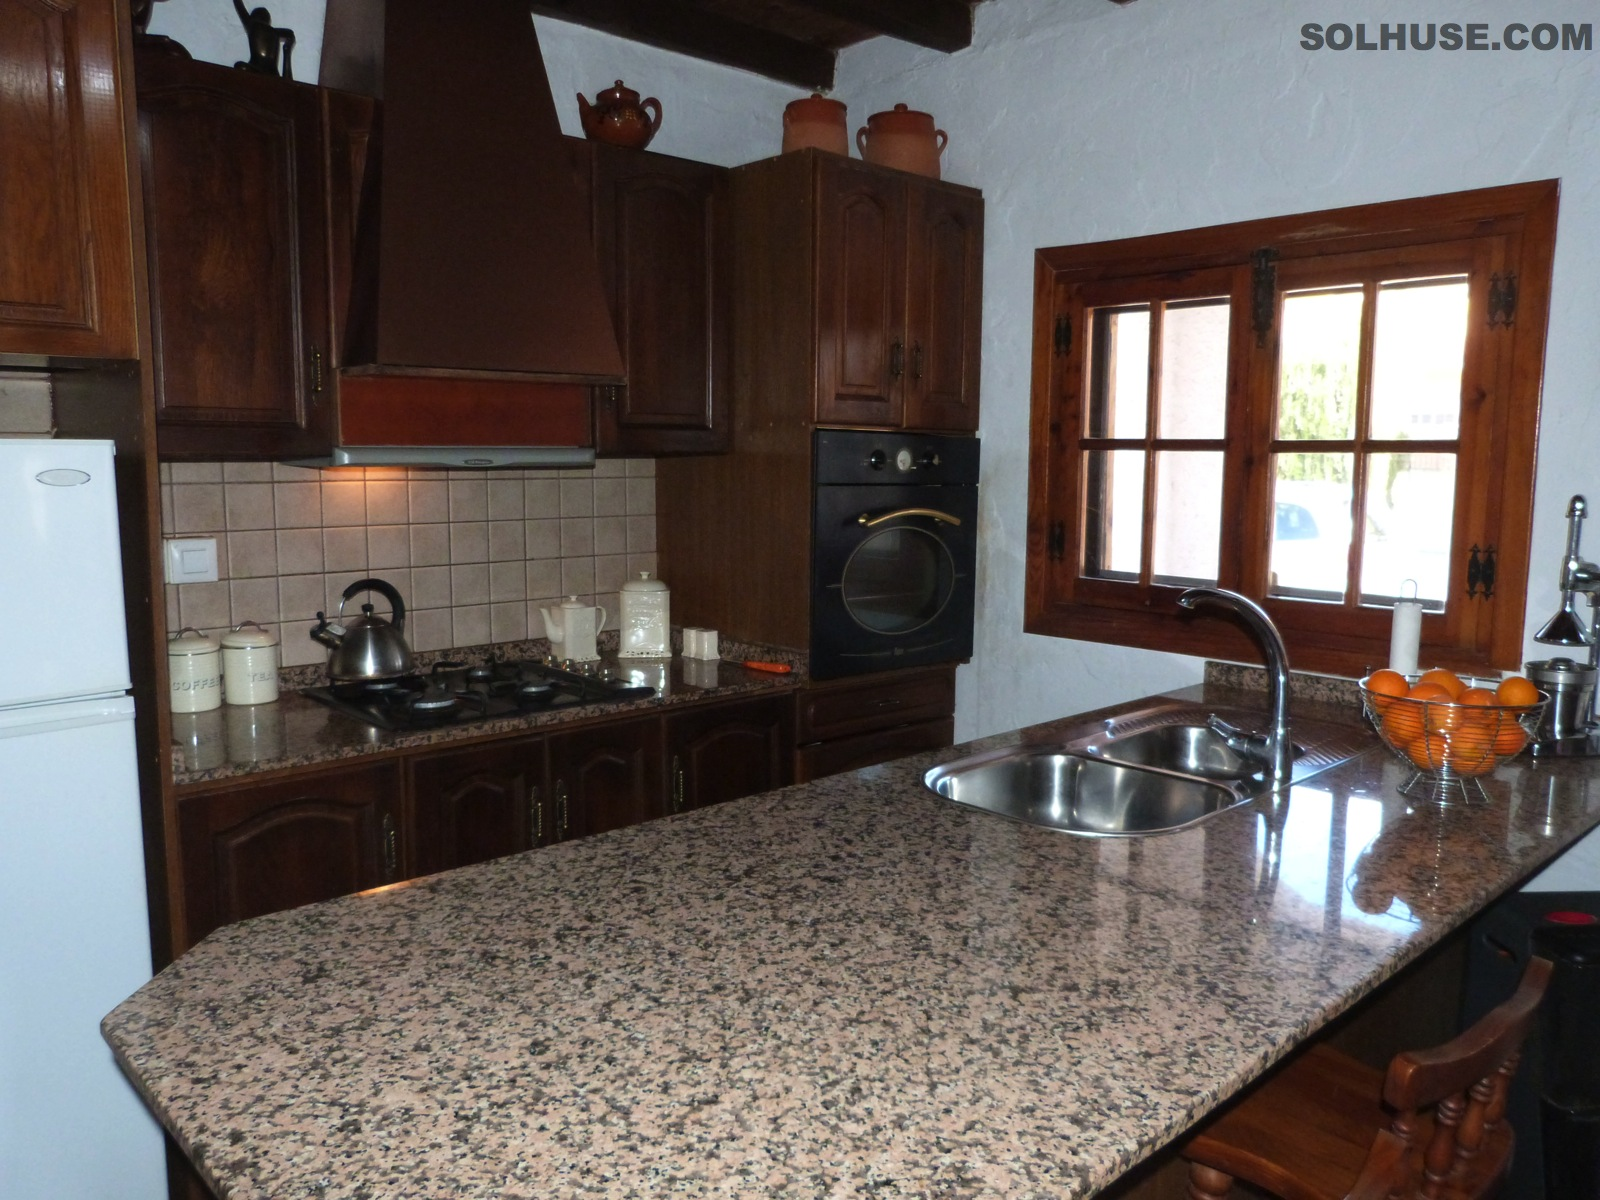 EXCEPTIONAL VILLA, 4 BEDROOMS, JACUZZI & CLOSE TO ALL AMENITIES